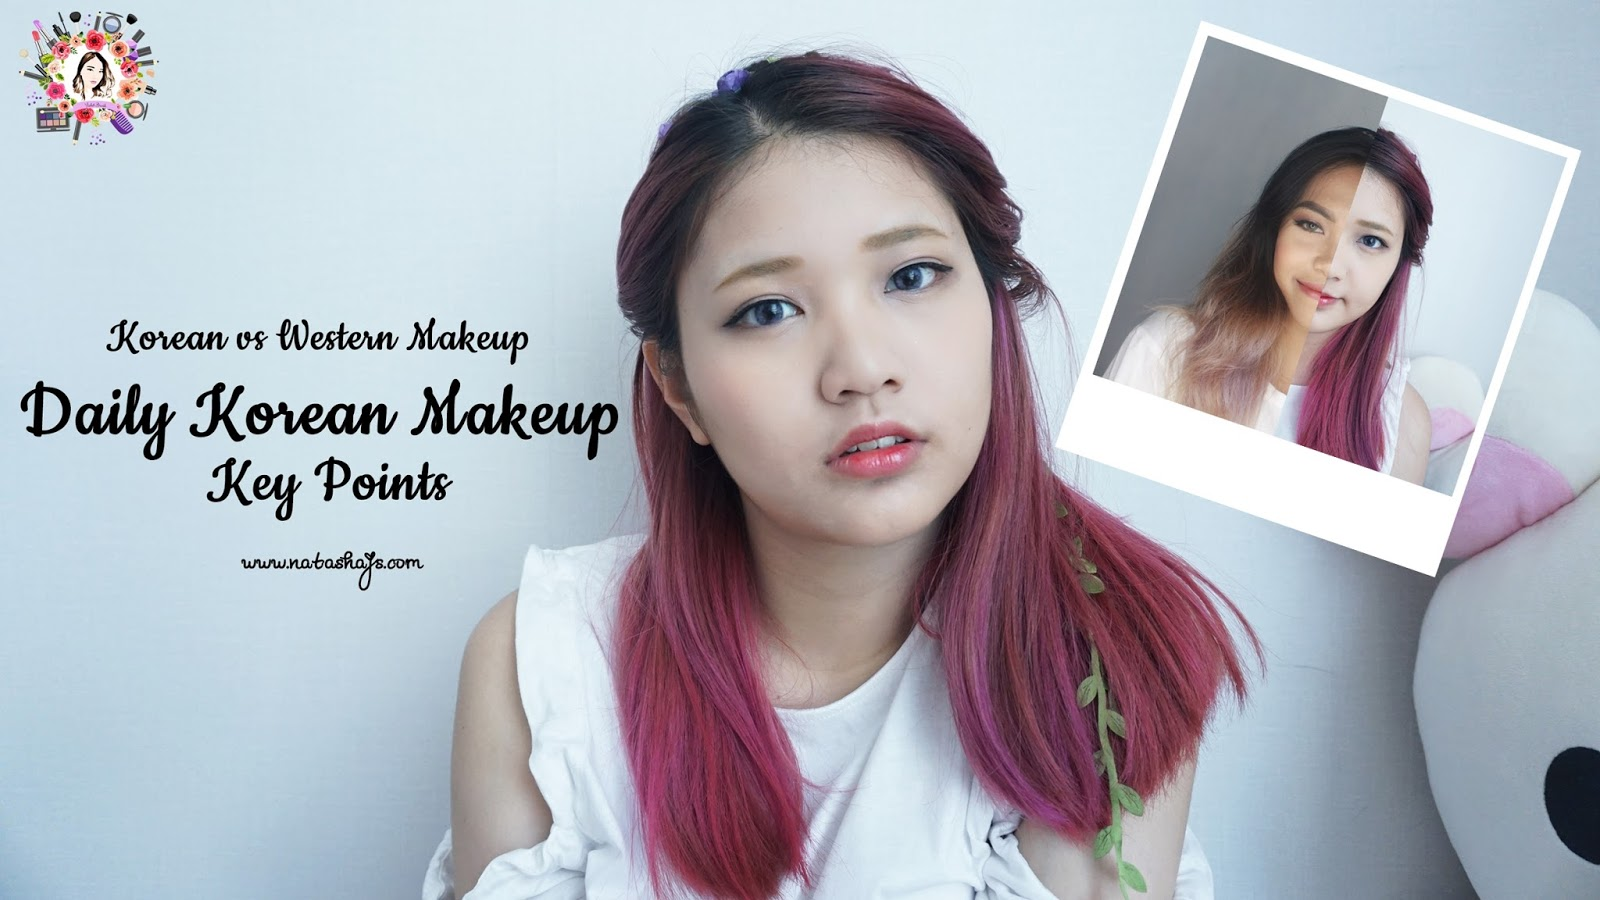 kroean-vs-western-makeup-tutorial-by-indonesian-beauty-blogger